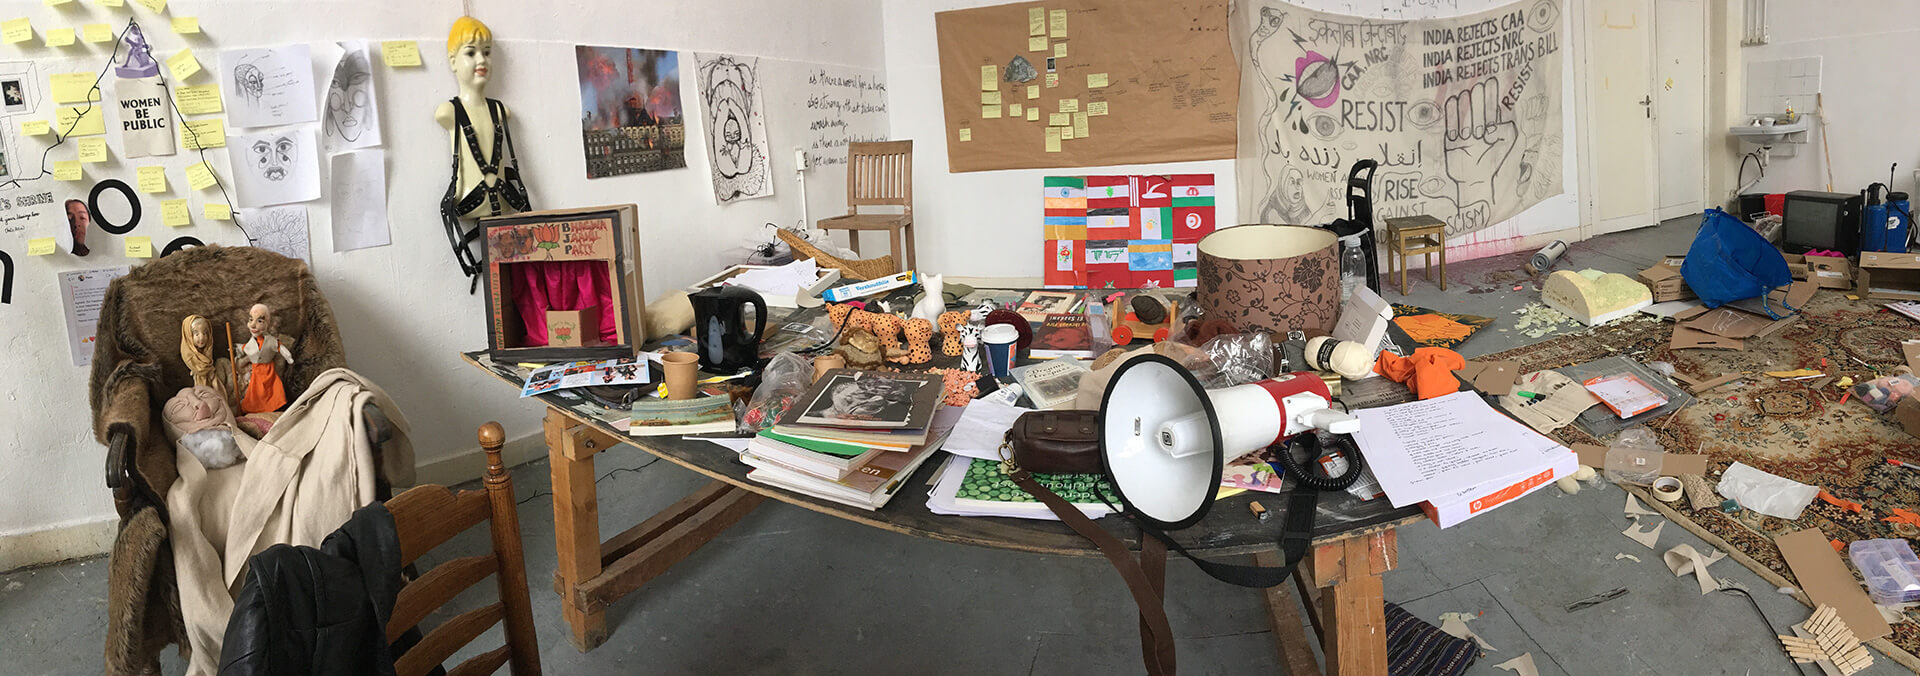 A peek into the studio of the young artist | Sarah Naqvi | STIRworld